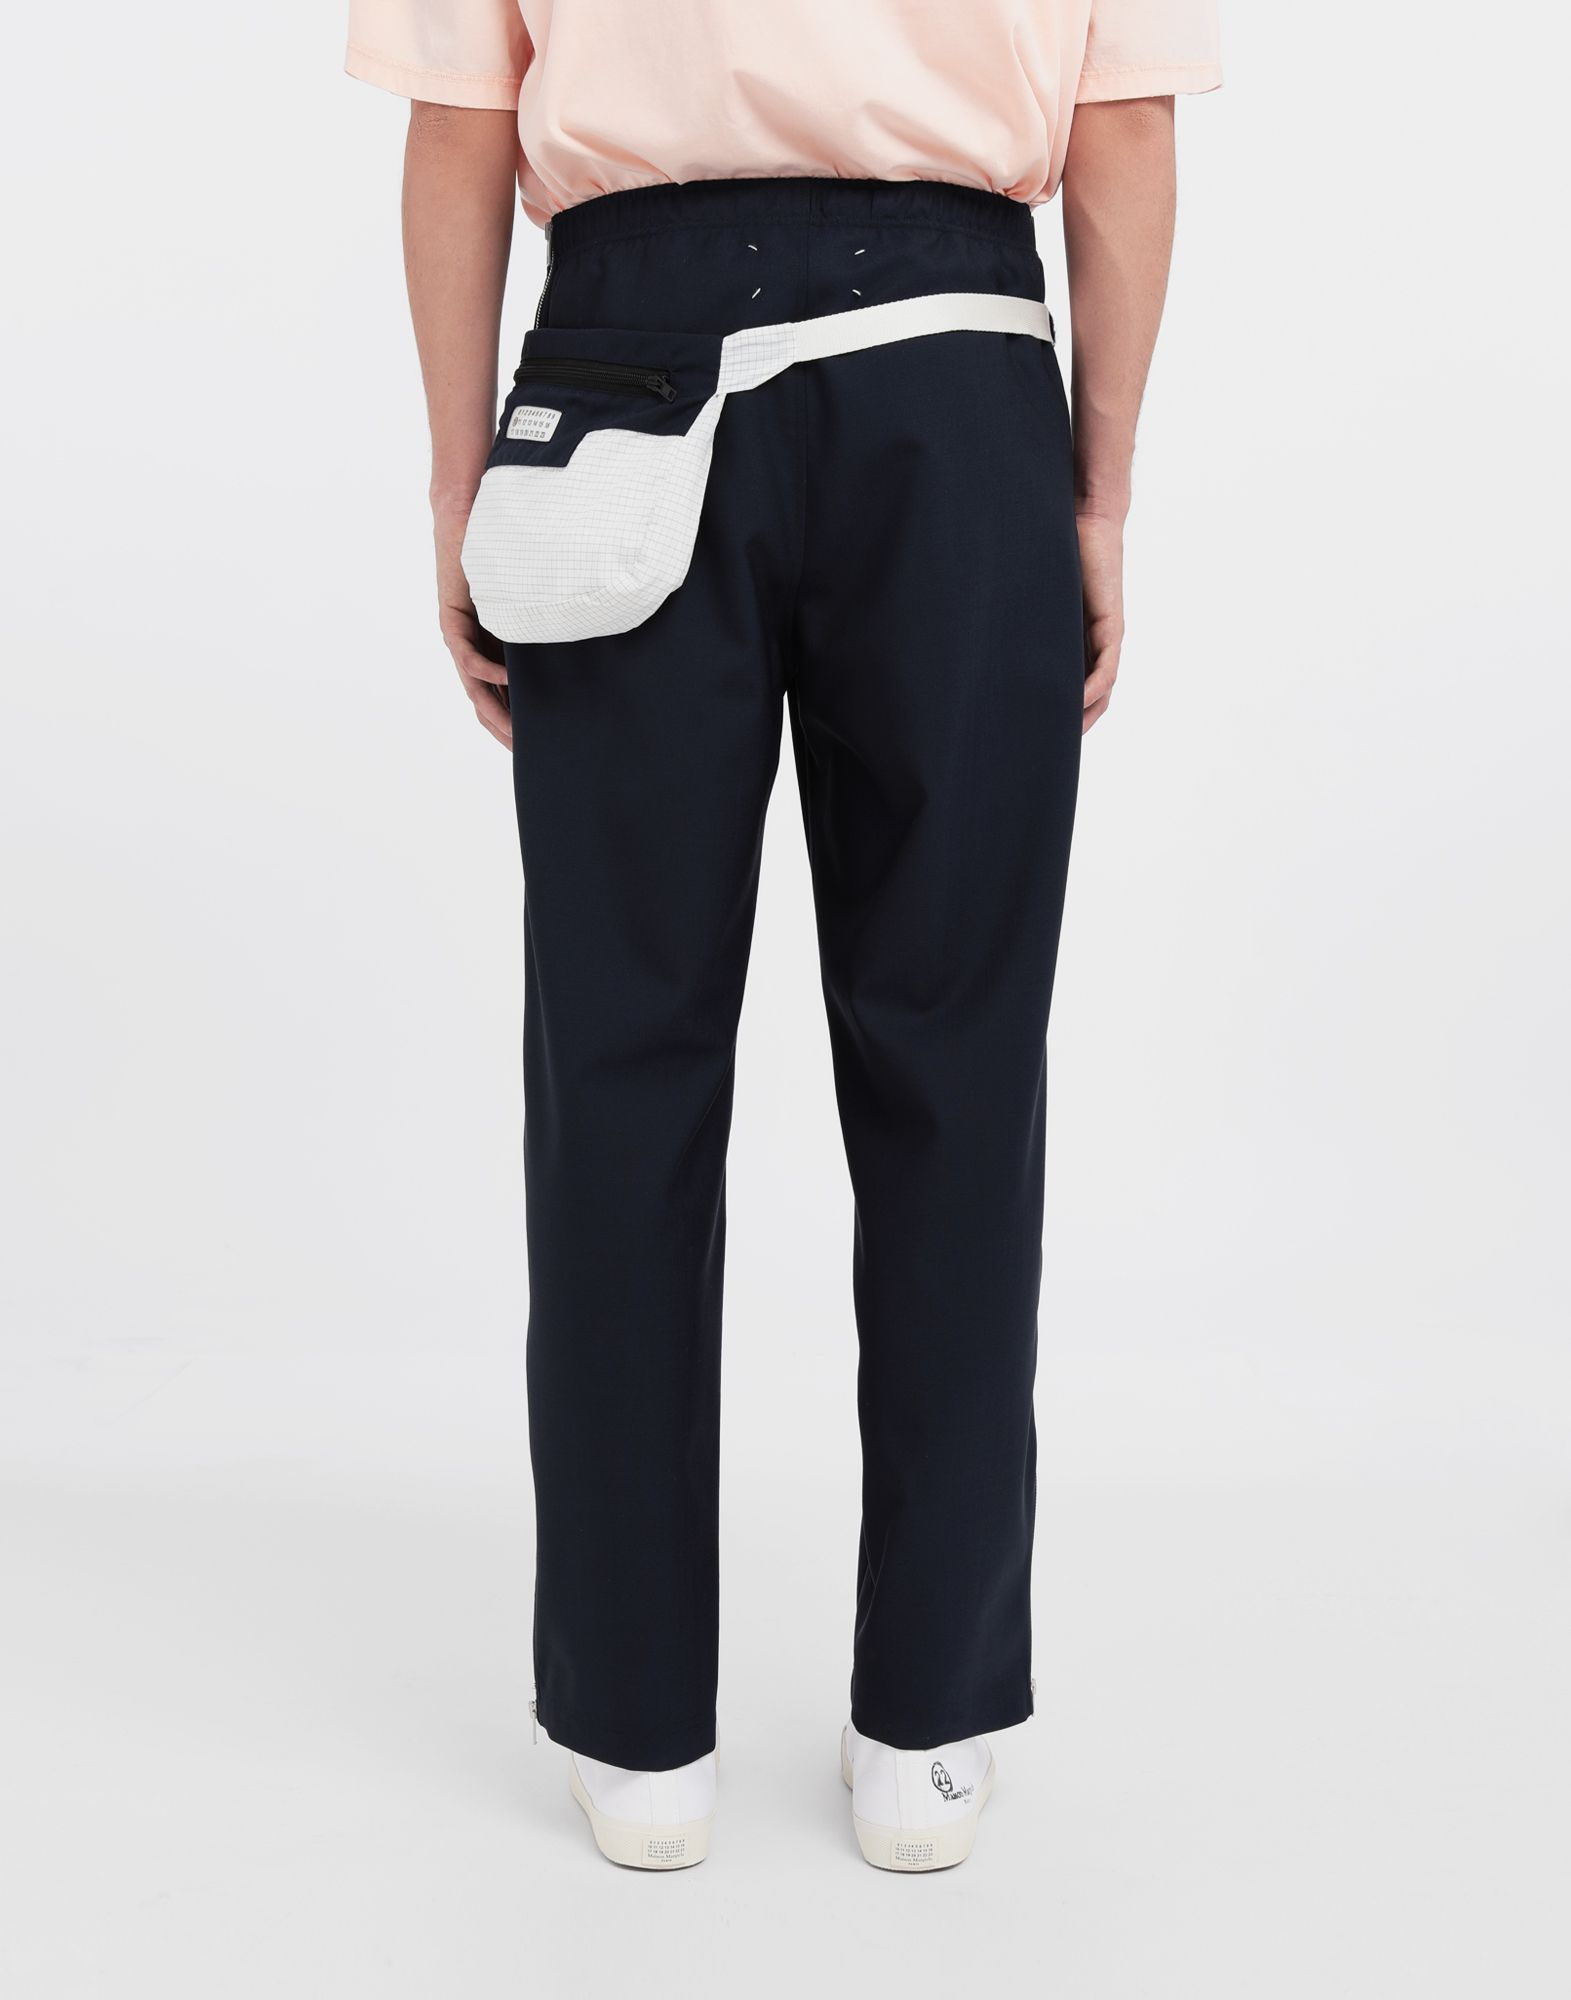 MAISON MARGIELA Bumbag pocket lining pants Casual pants Man e